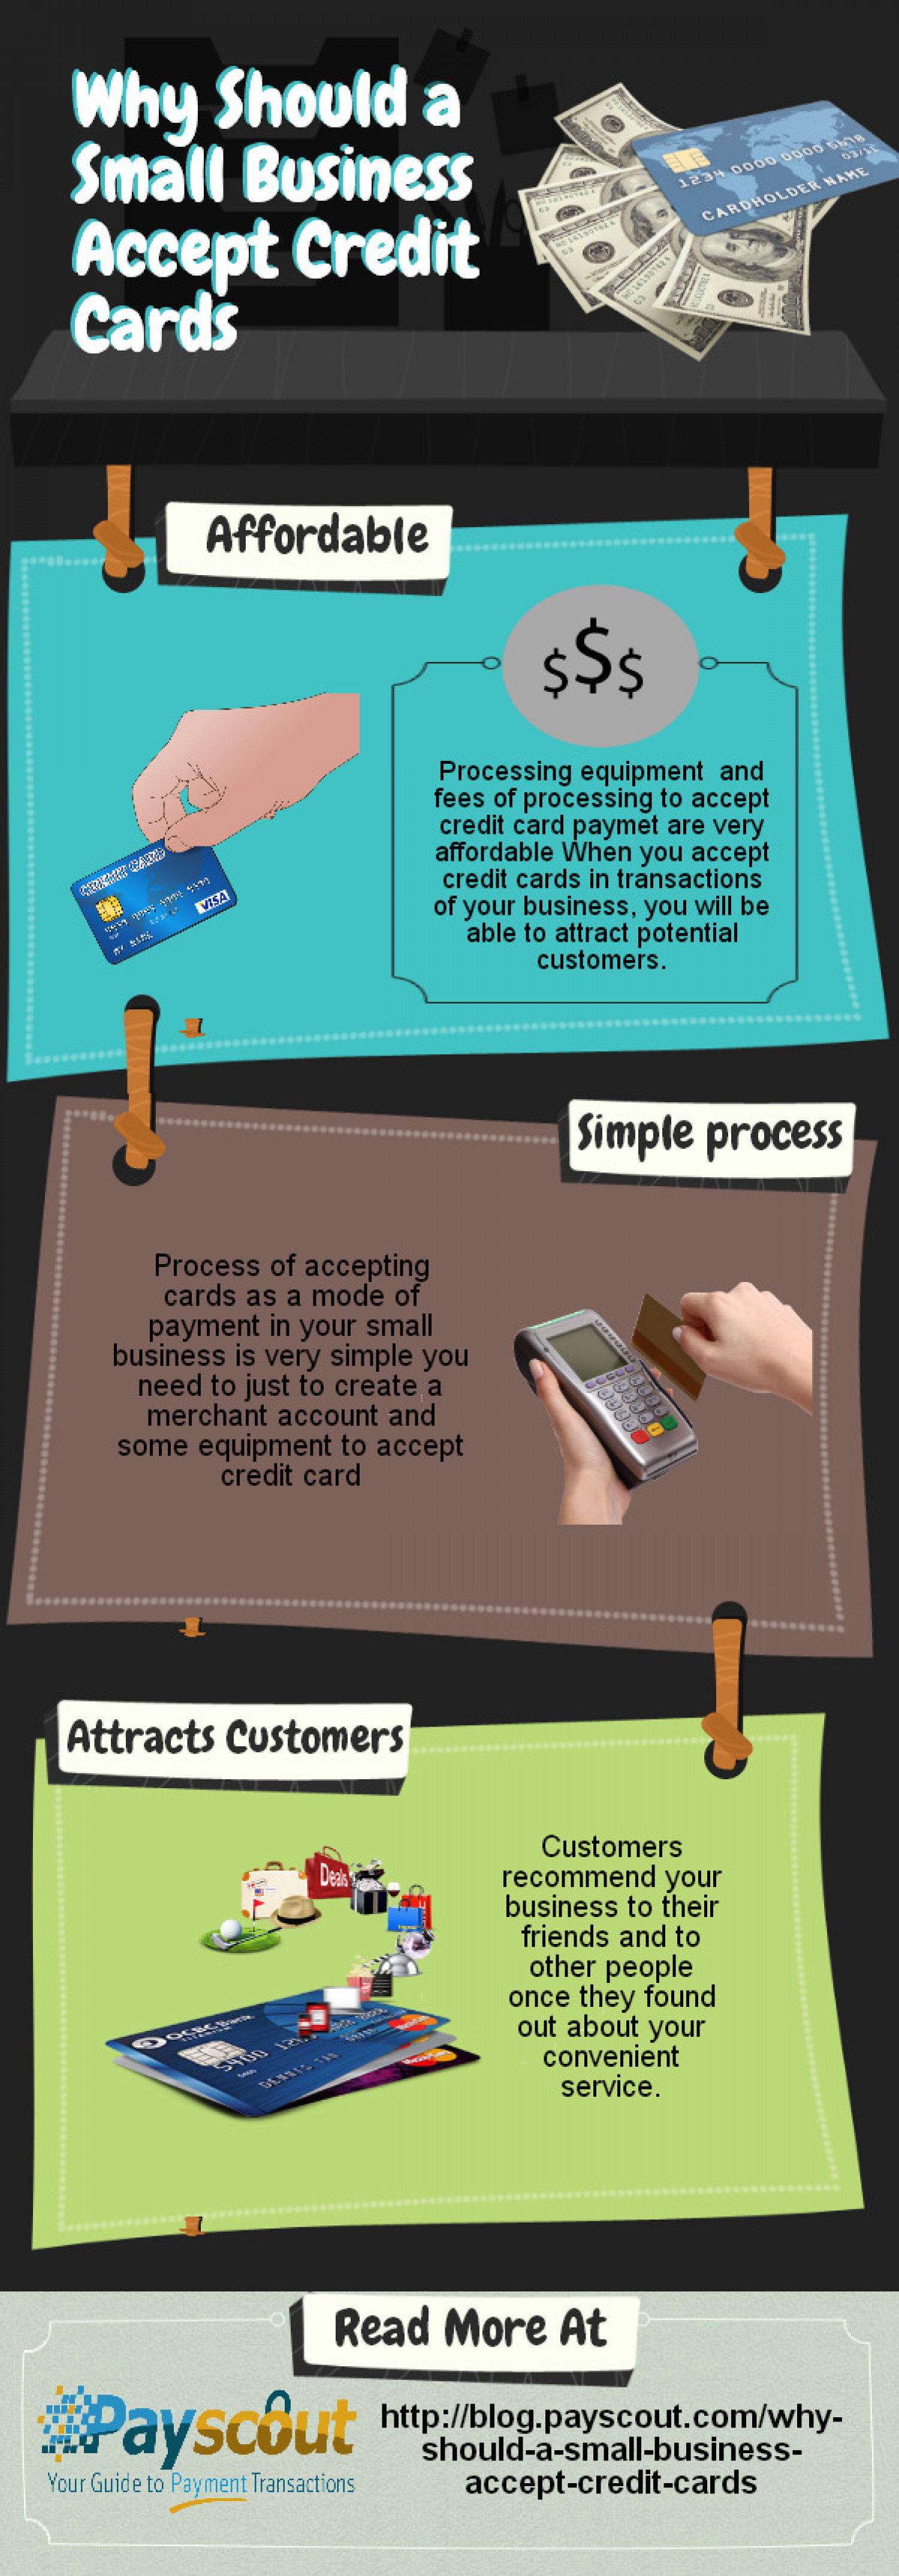 Why should small business accept credit cards visual why should small business accept credit cards infographic colourmoves